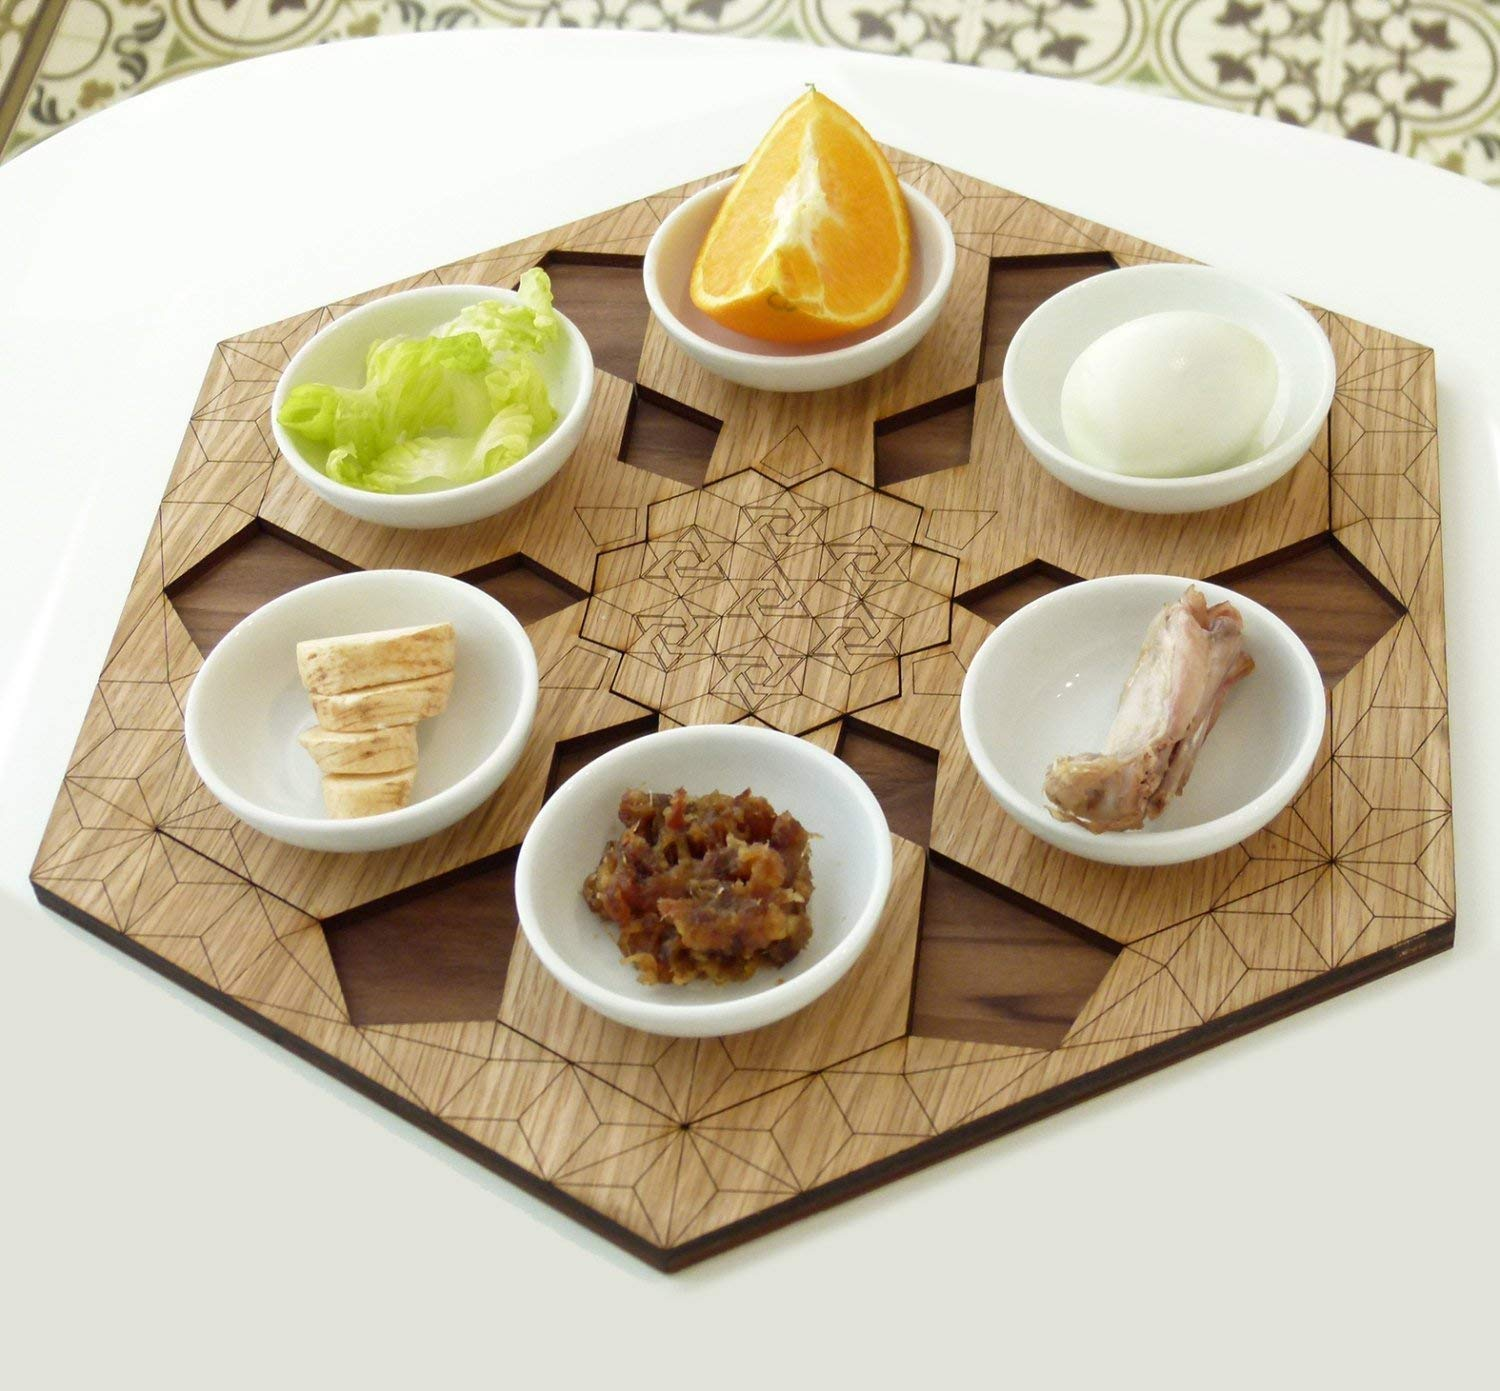 Modern Passover Seder Plate + Set of 6 Pomegranate Shape Coasters. Judaica Gift from Israel, in Hexagon trendy design. Walnut and Oak Veneer over with Laser-Cut Engraving